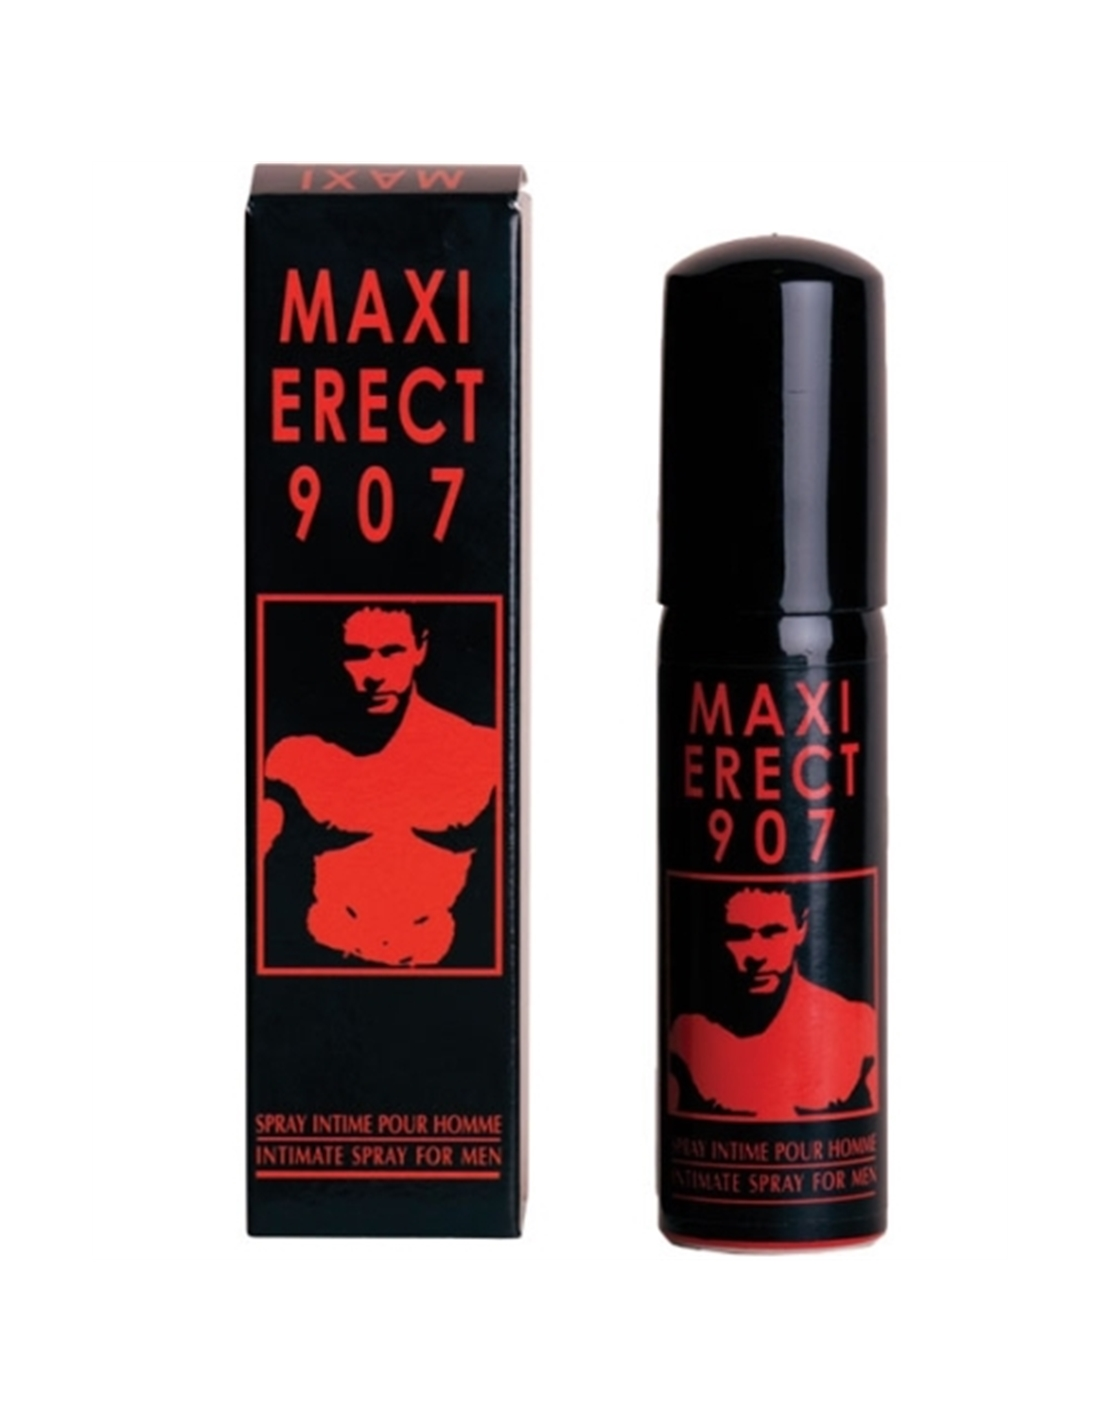 Maxi Erect 907 - 25ml - DO29005596